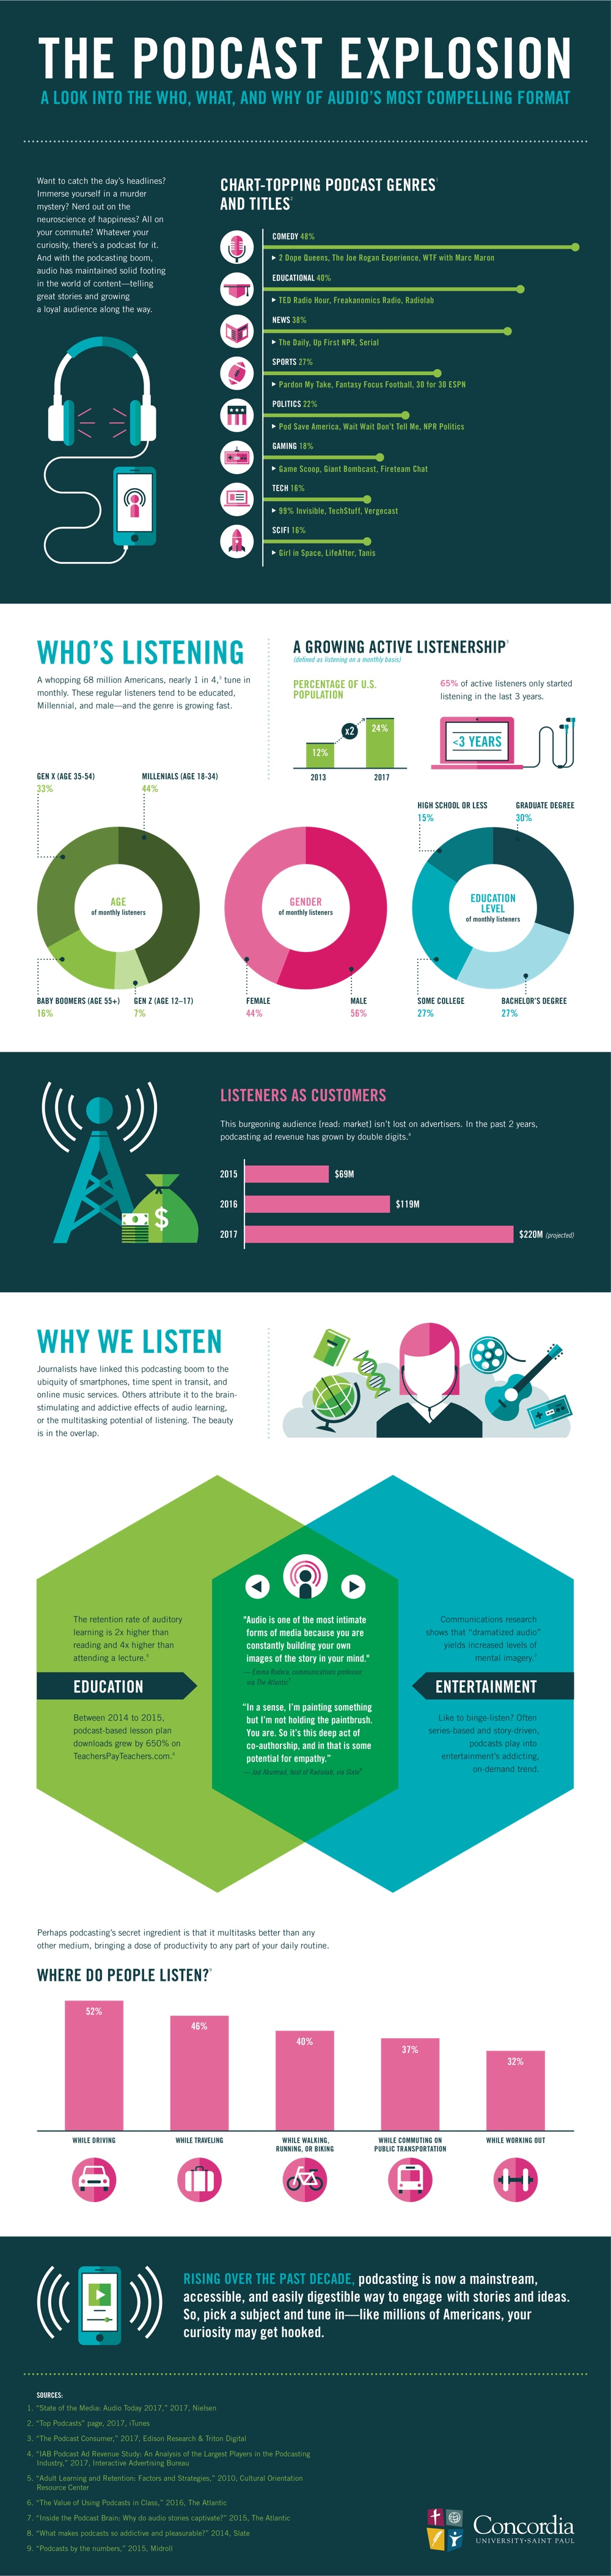 The Podcasting Boom Explained in One Infographic